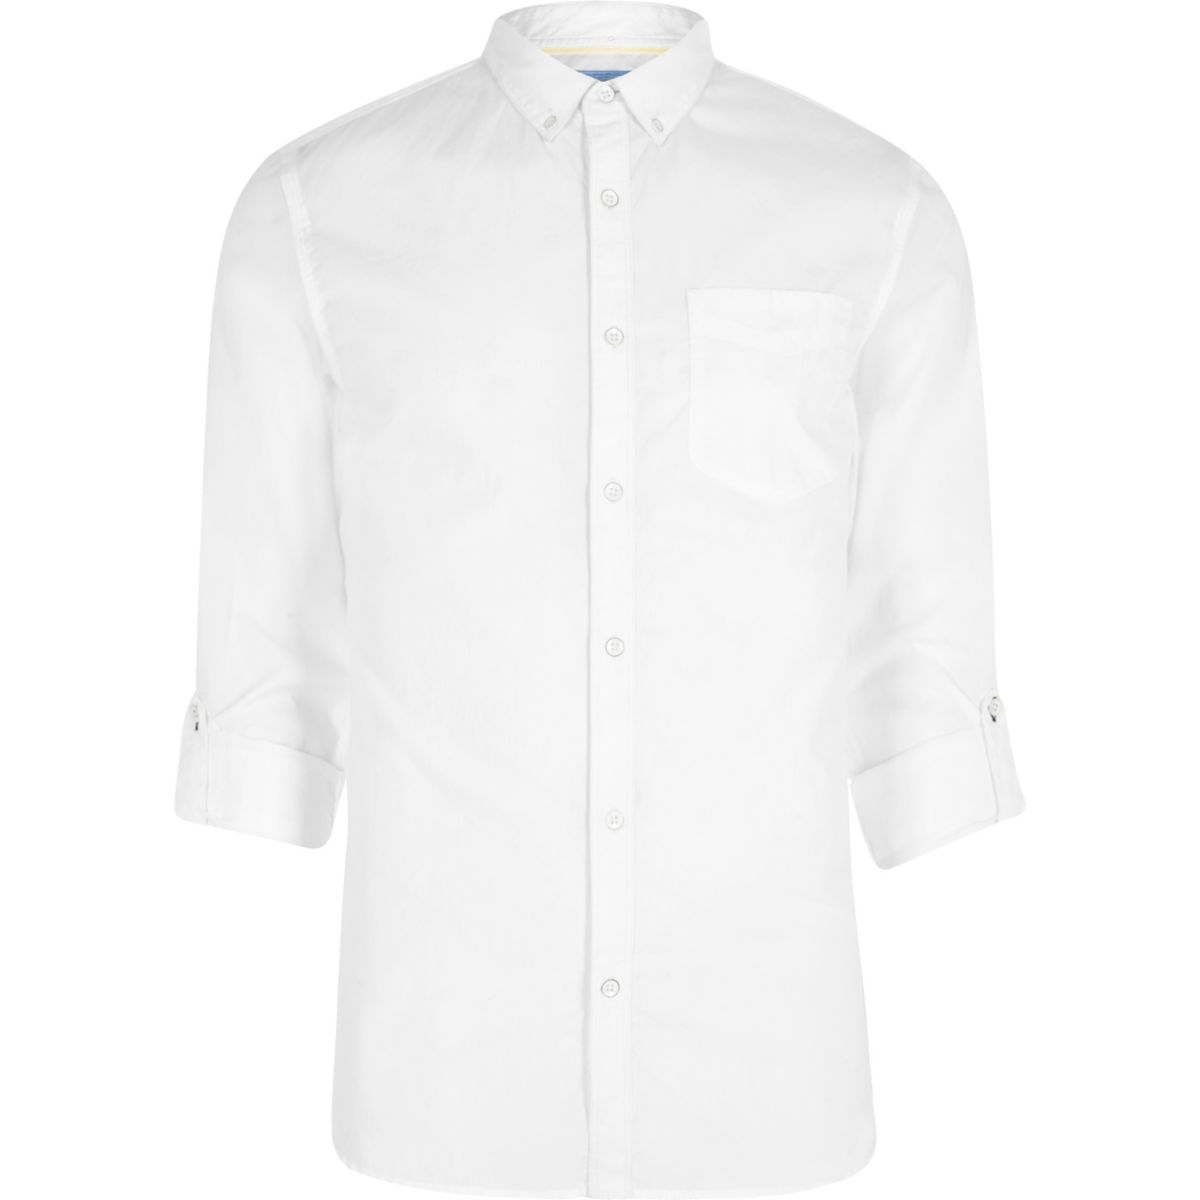 White poplin rolled sleeve slim fit shirt